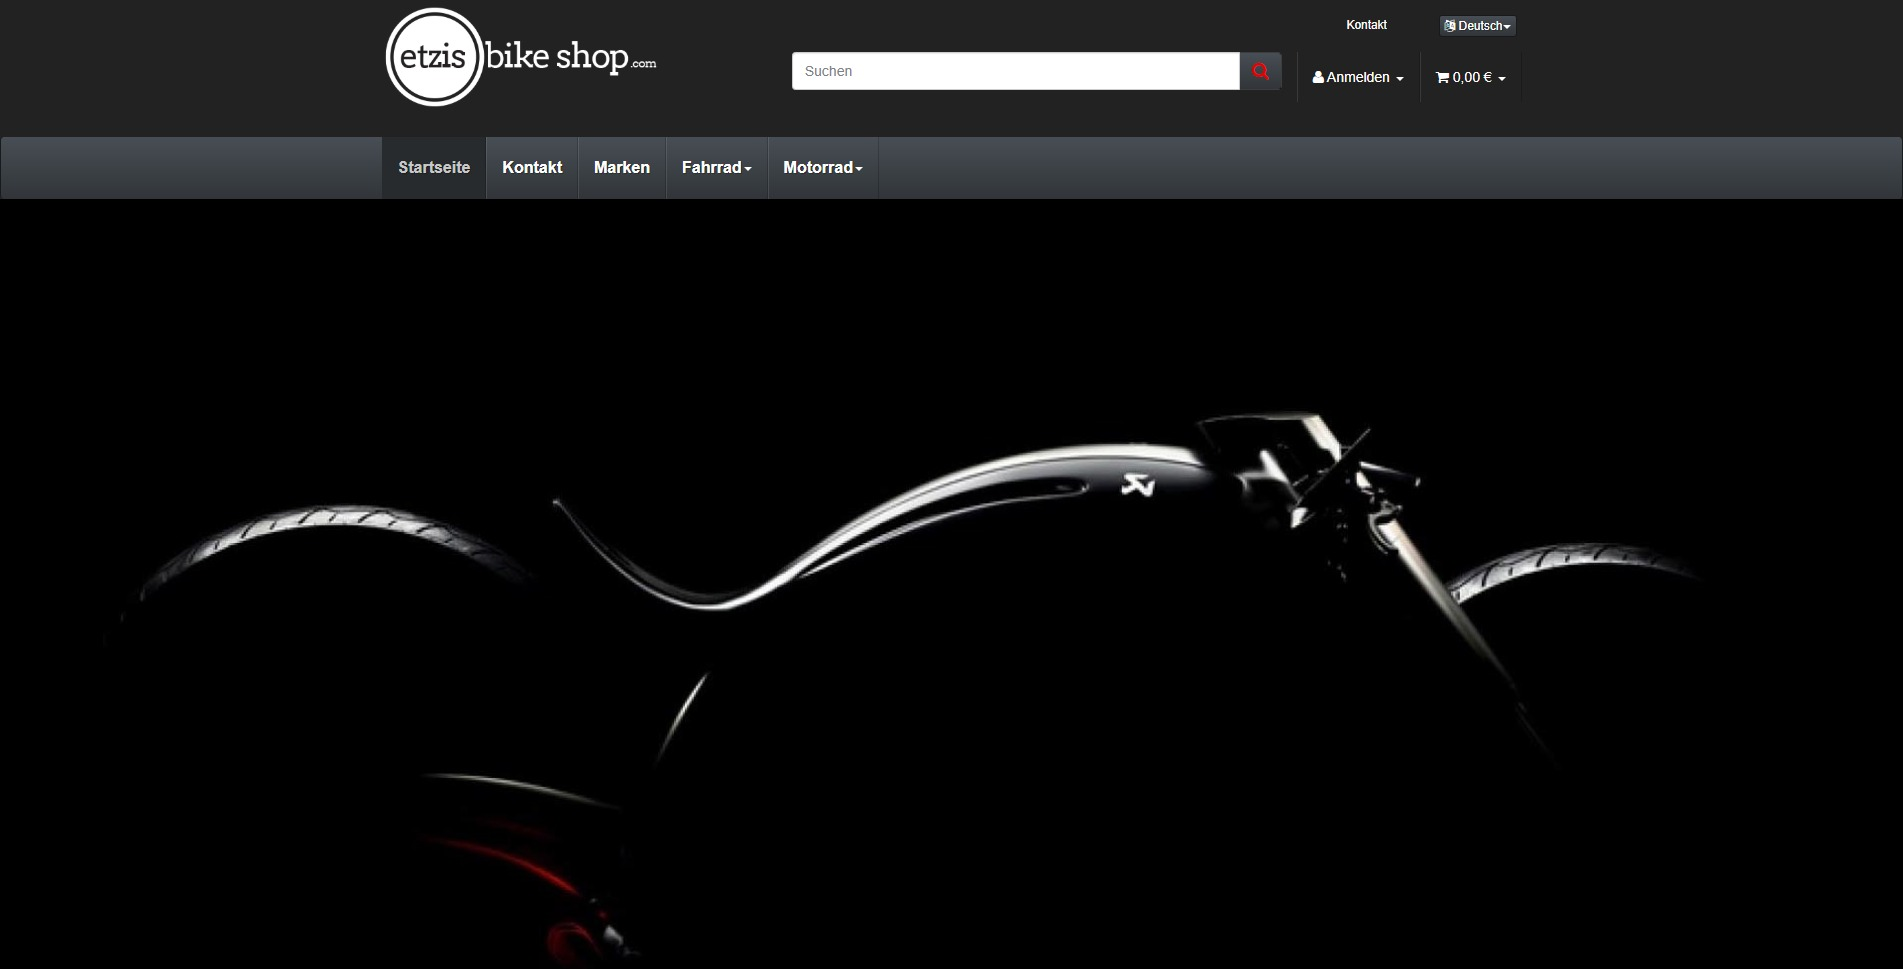 Etzis Bike Shop Homepage